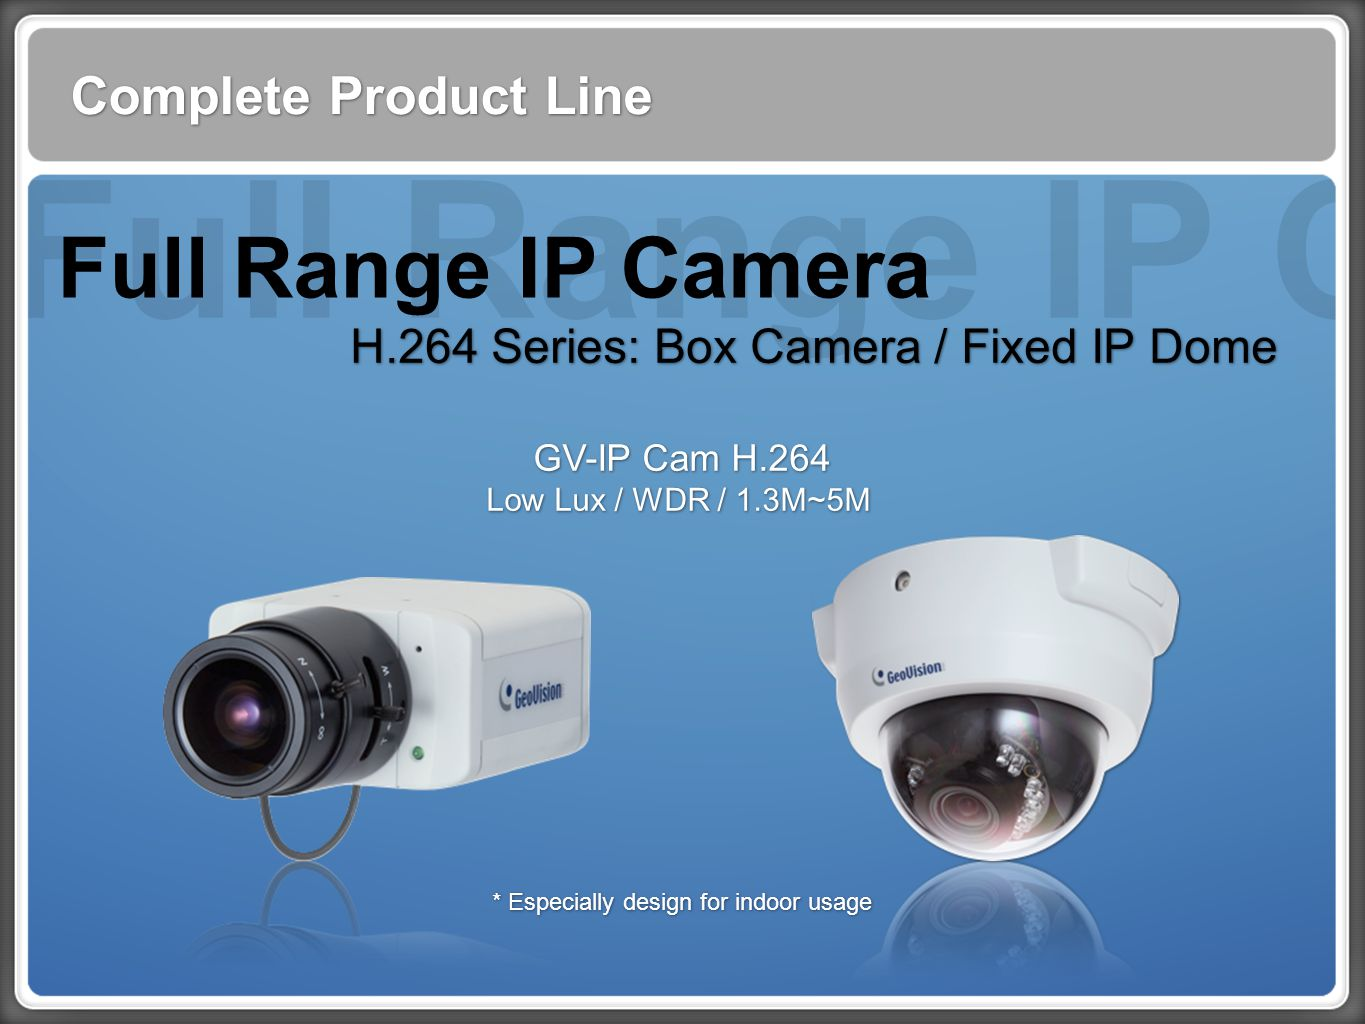 Complete Product Line H.264 Series: Box Camera / Fixed IP Dome GV-IP Cam H.264 Low Lux / WDR / 1.3M~5M GV-IP Cam H.264 Low Lux / WDR / 1.3M~5M * Especially design for indoor usage Full Range IP Camera